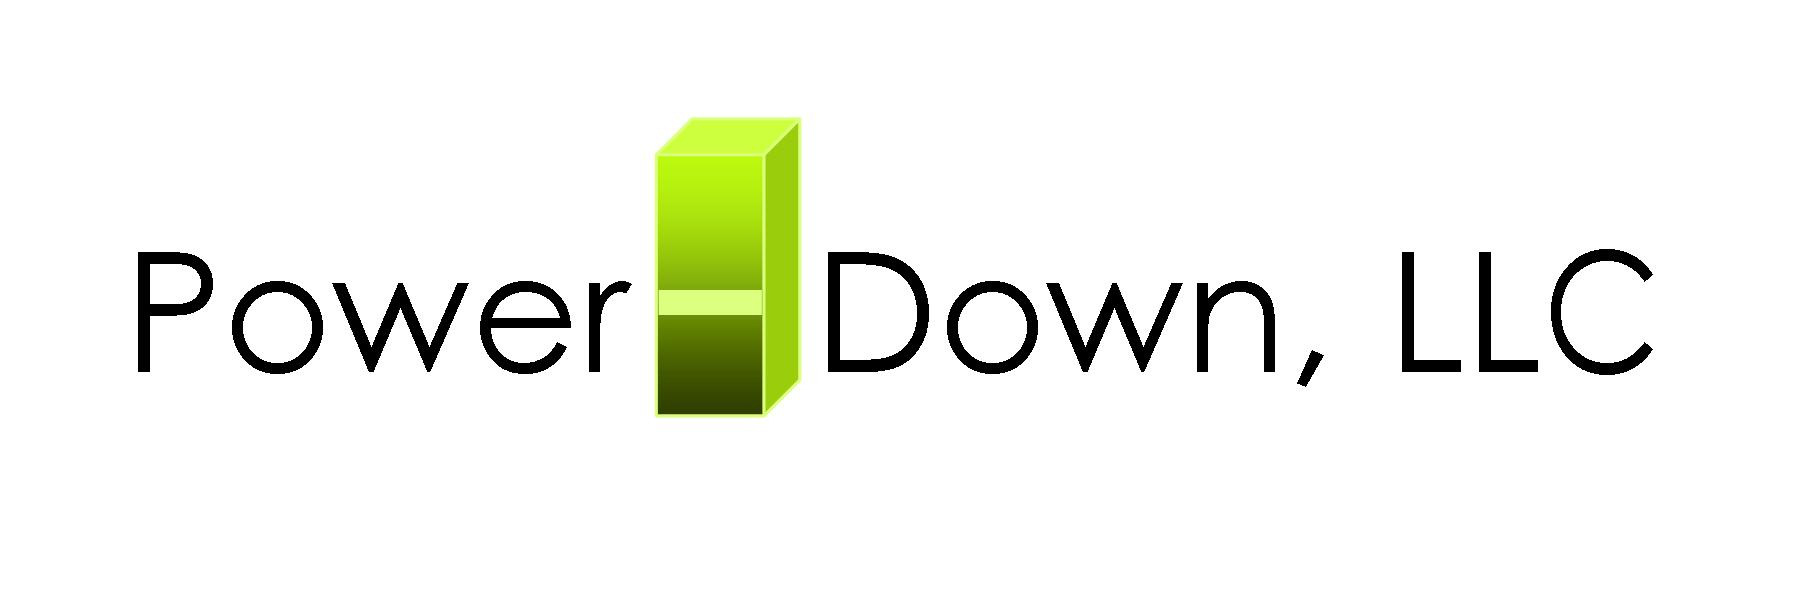 Power Down LLC